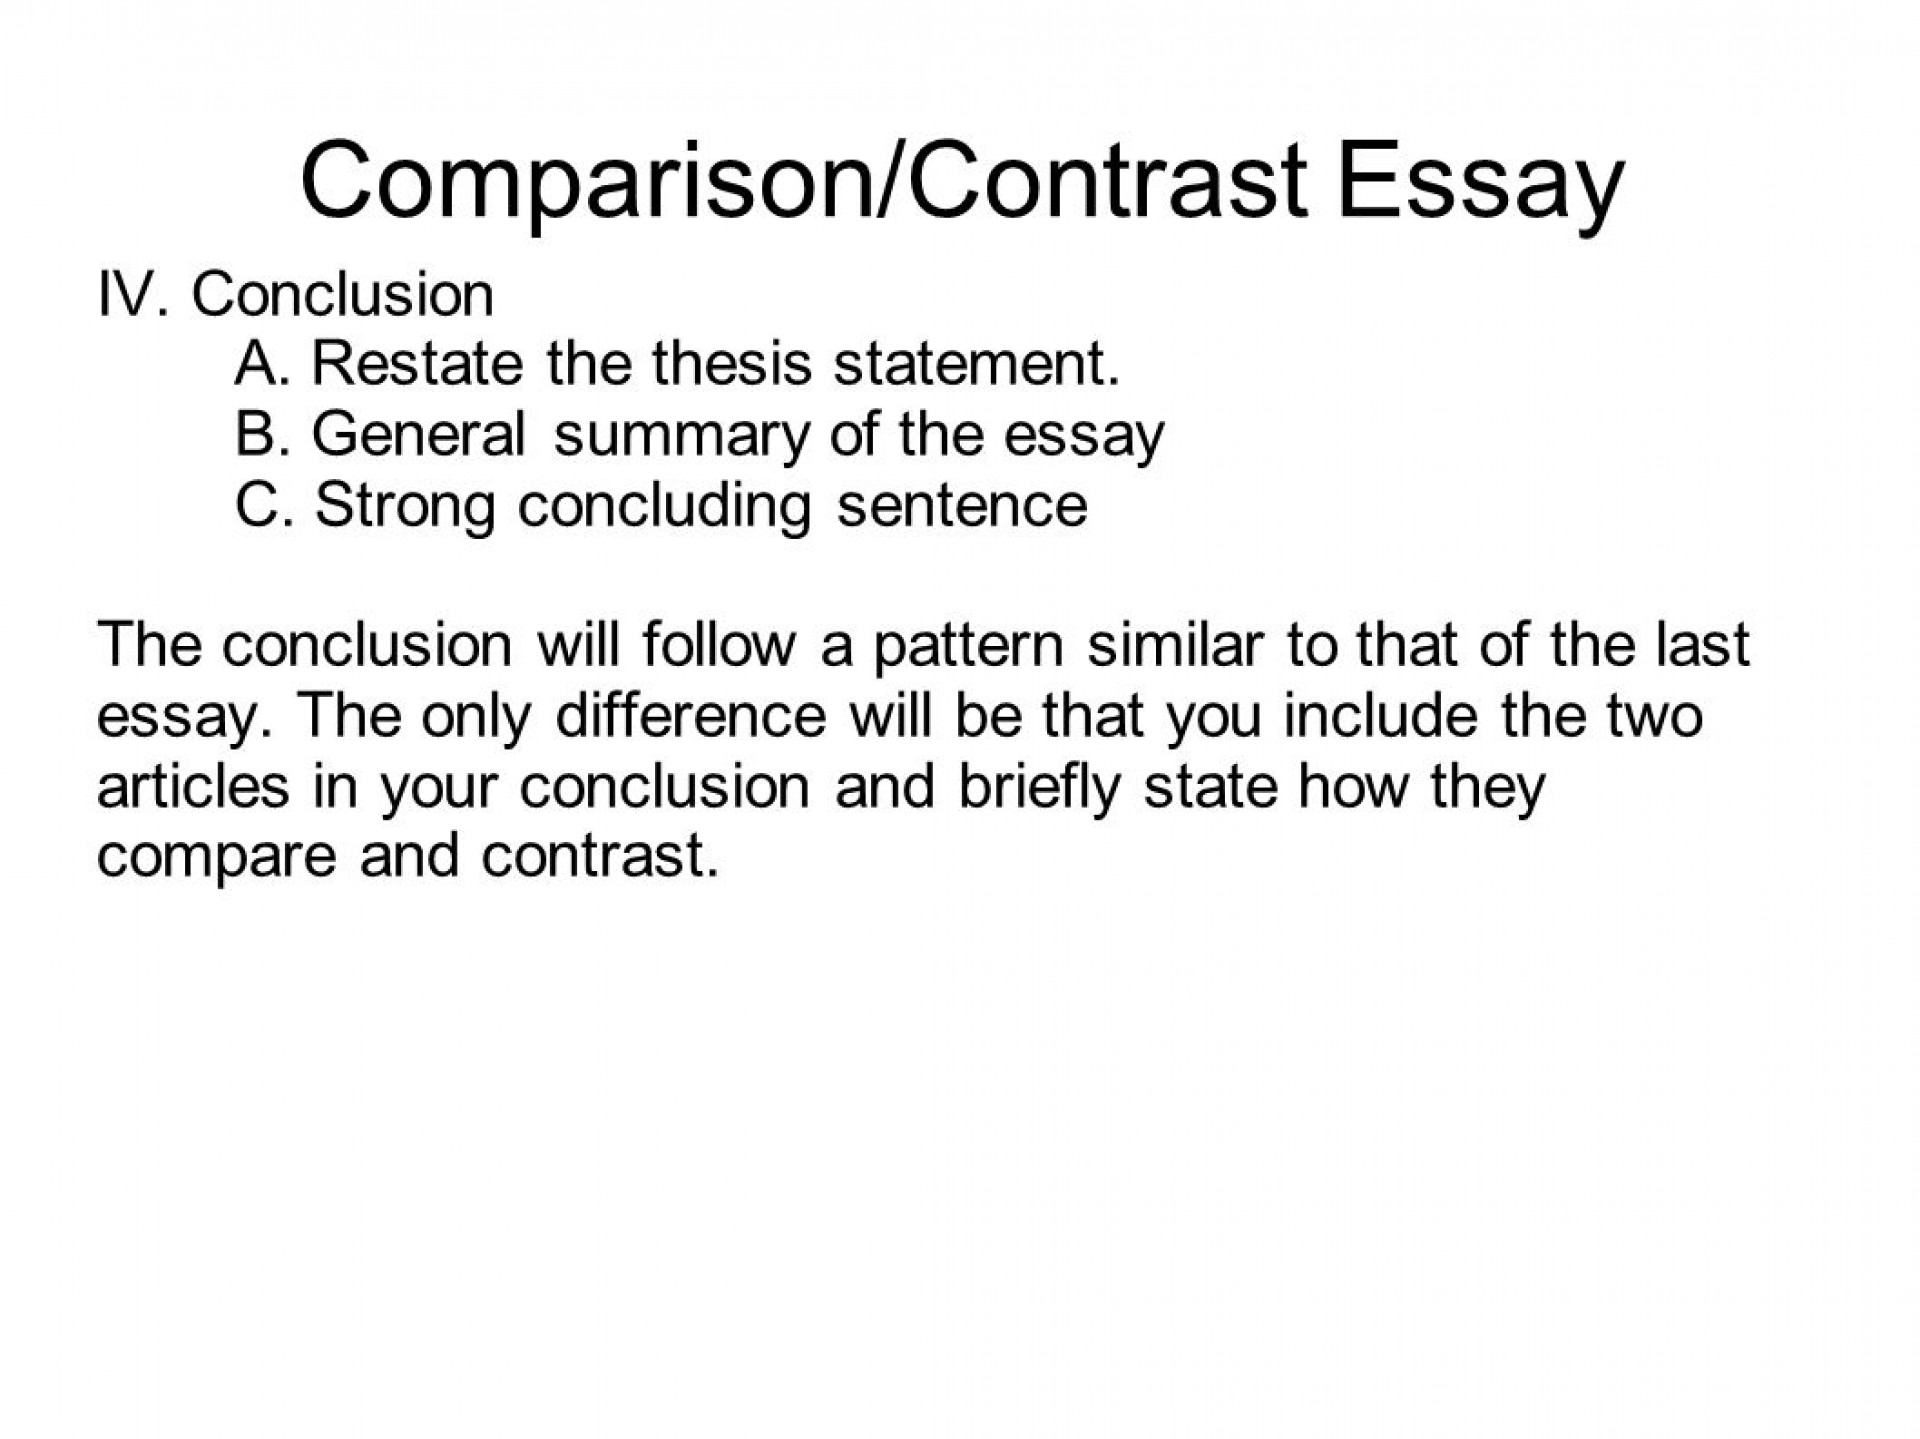 010 Good Compare And Contrast Essays Conclusion Paragraph For How To Write An Essay Sli Analysis Argumentative Art Academic Informative Sentence Opinion Unbelievable A Examples Transition Words Pdf 1920